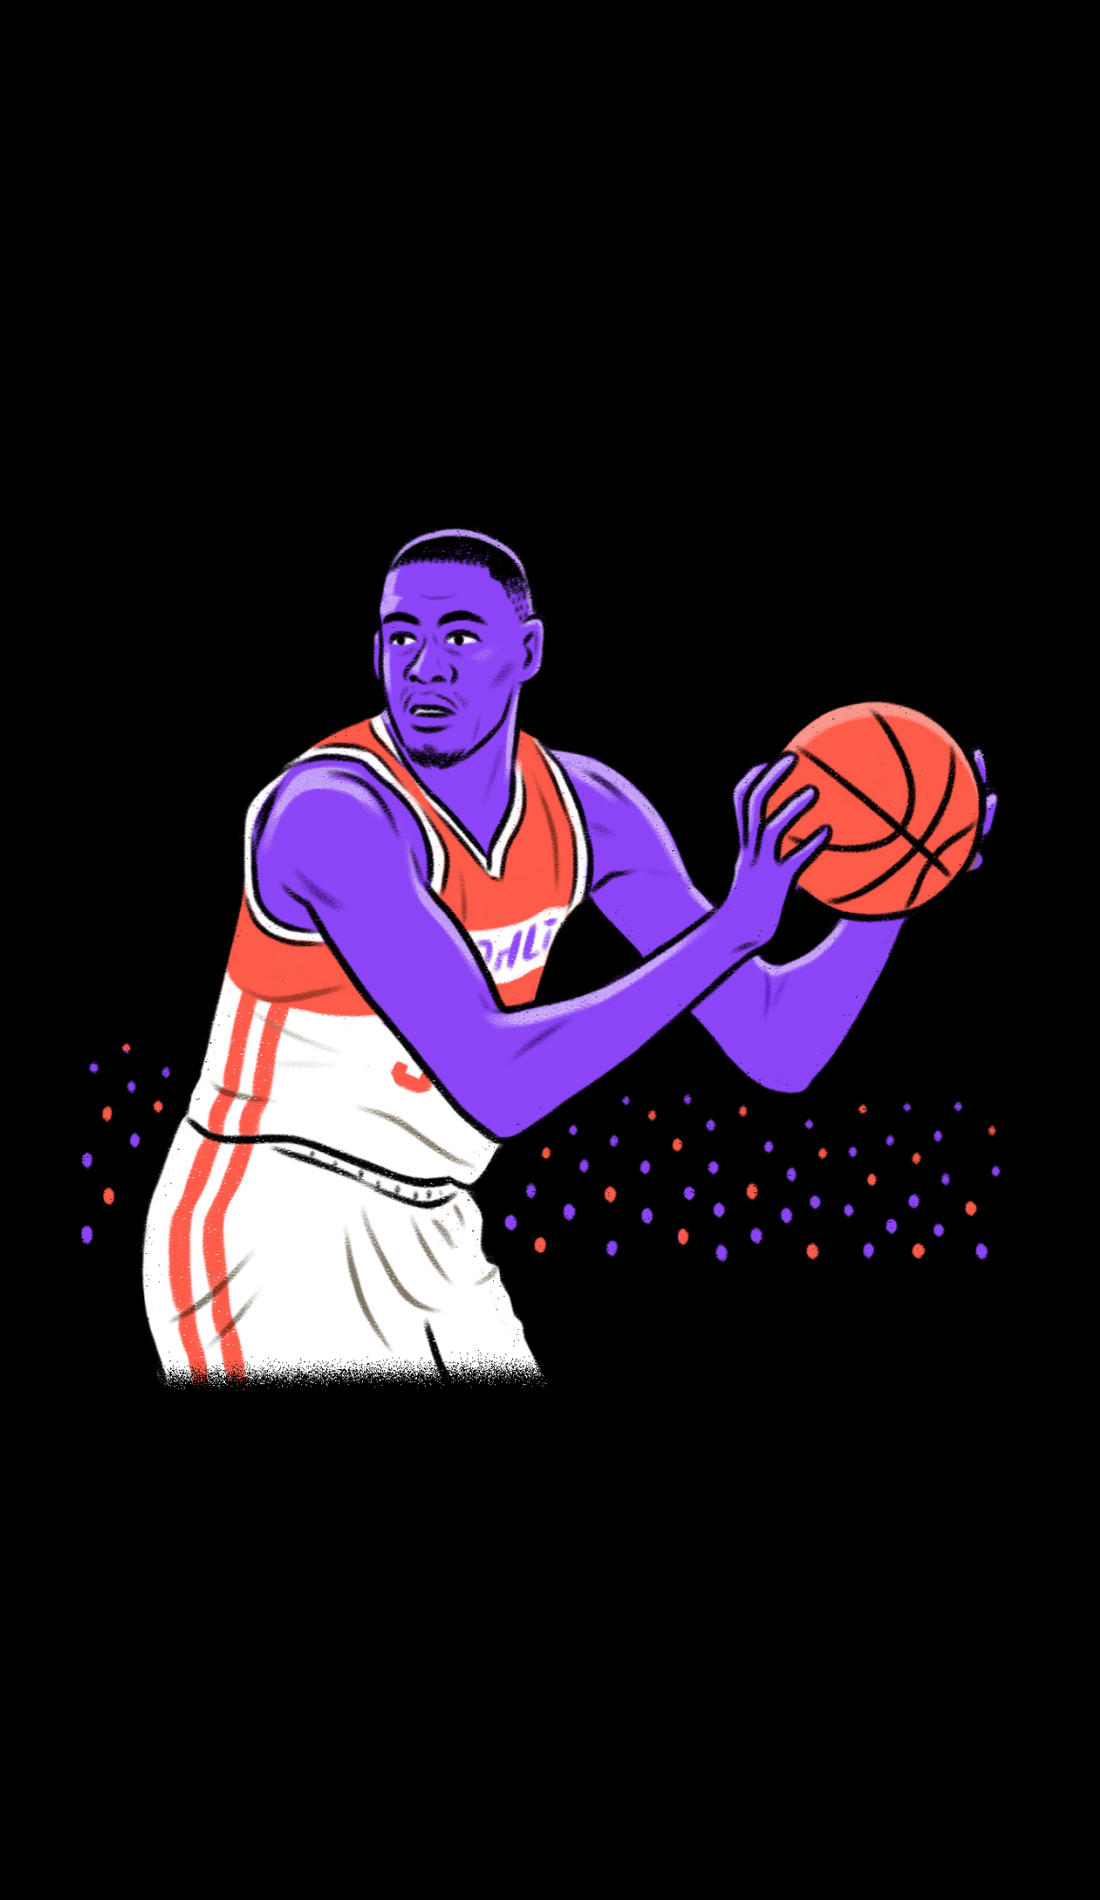 A Gonzaga Bulldogs Basketball live event